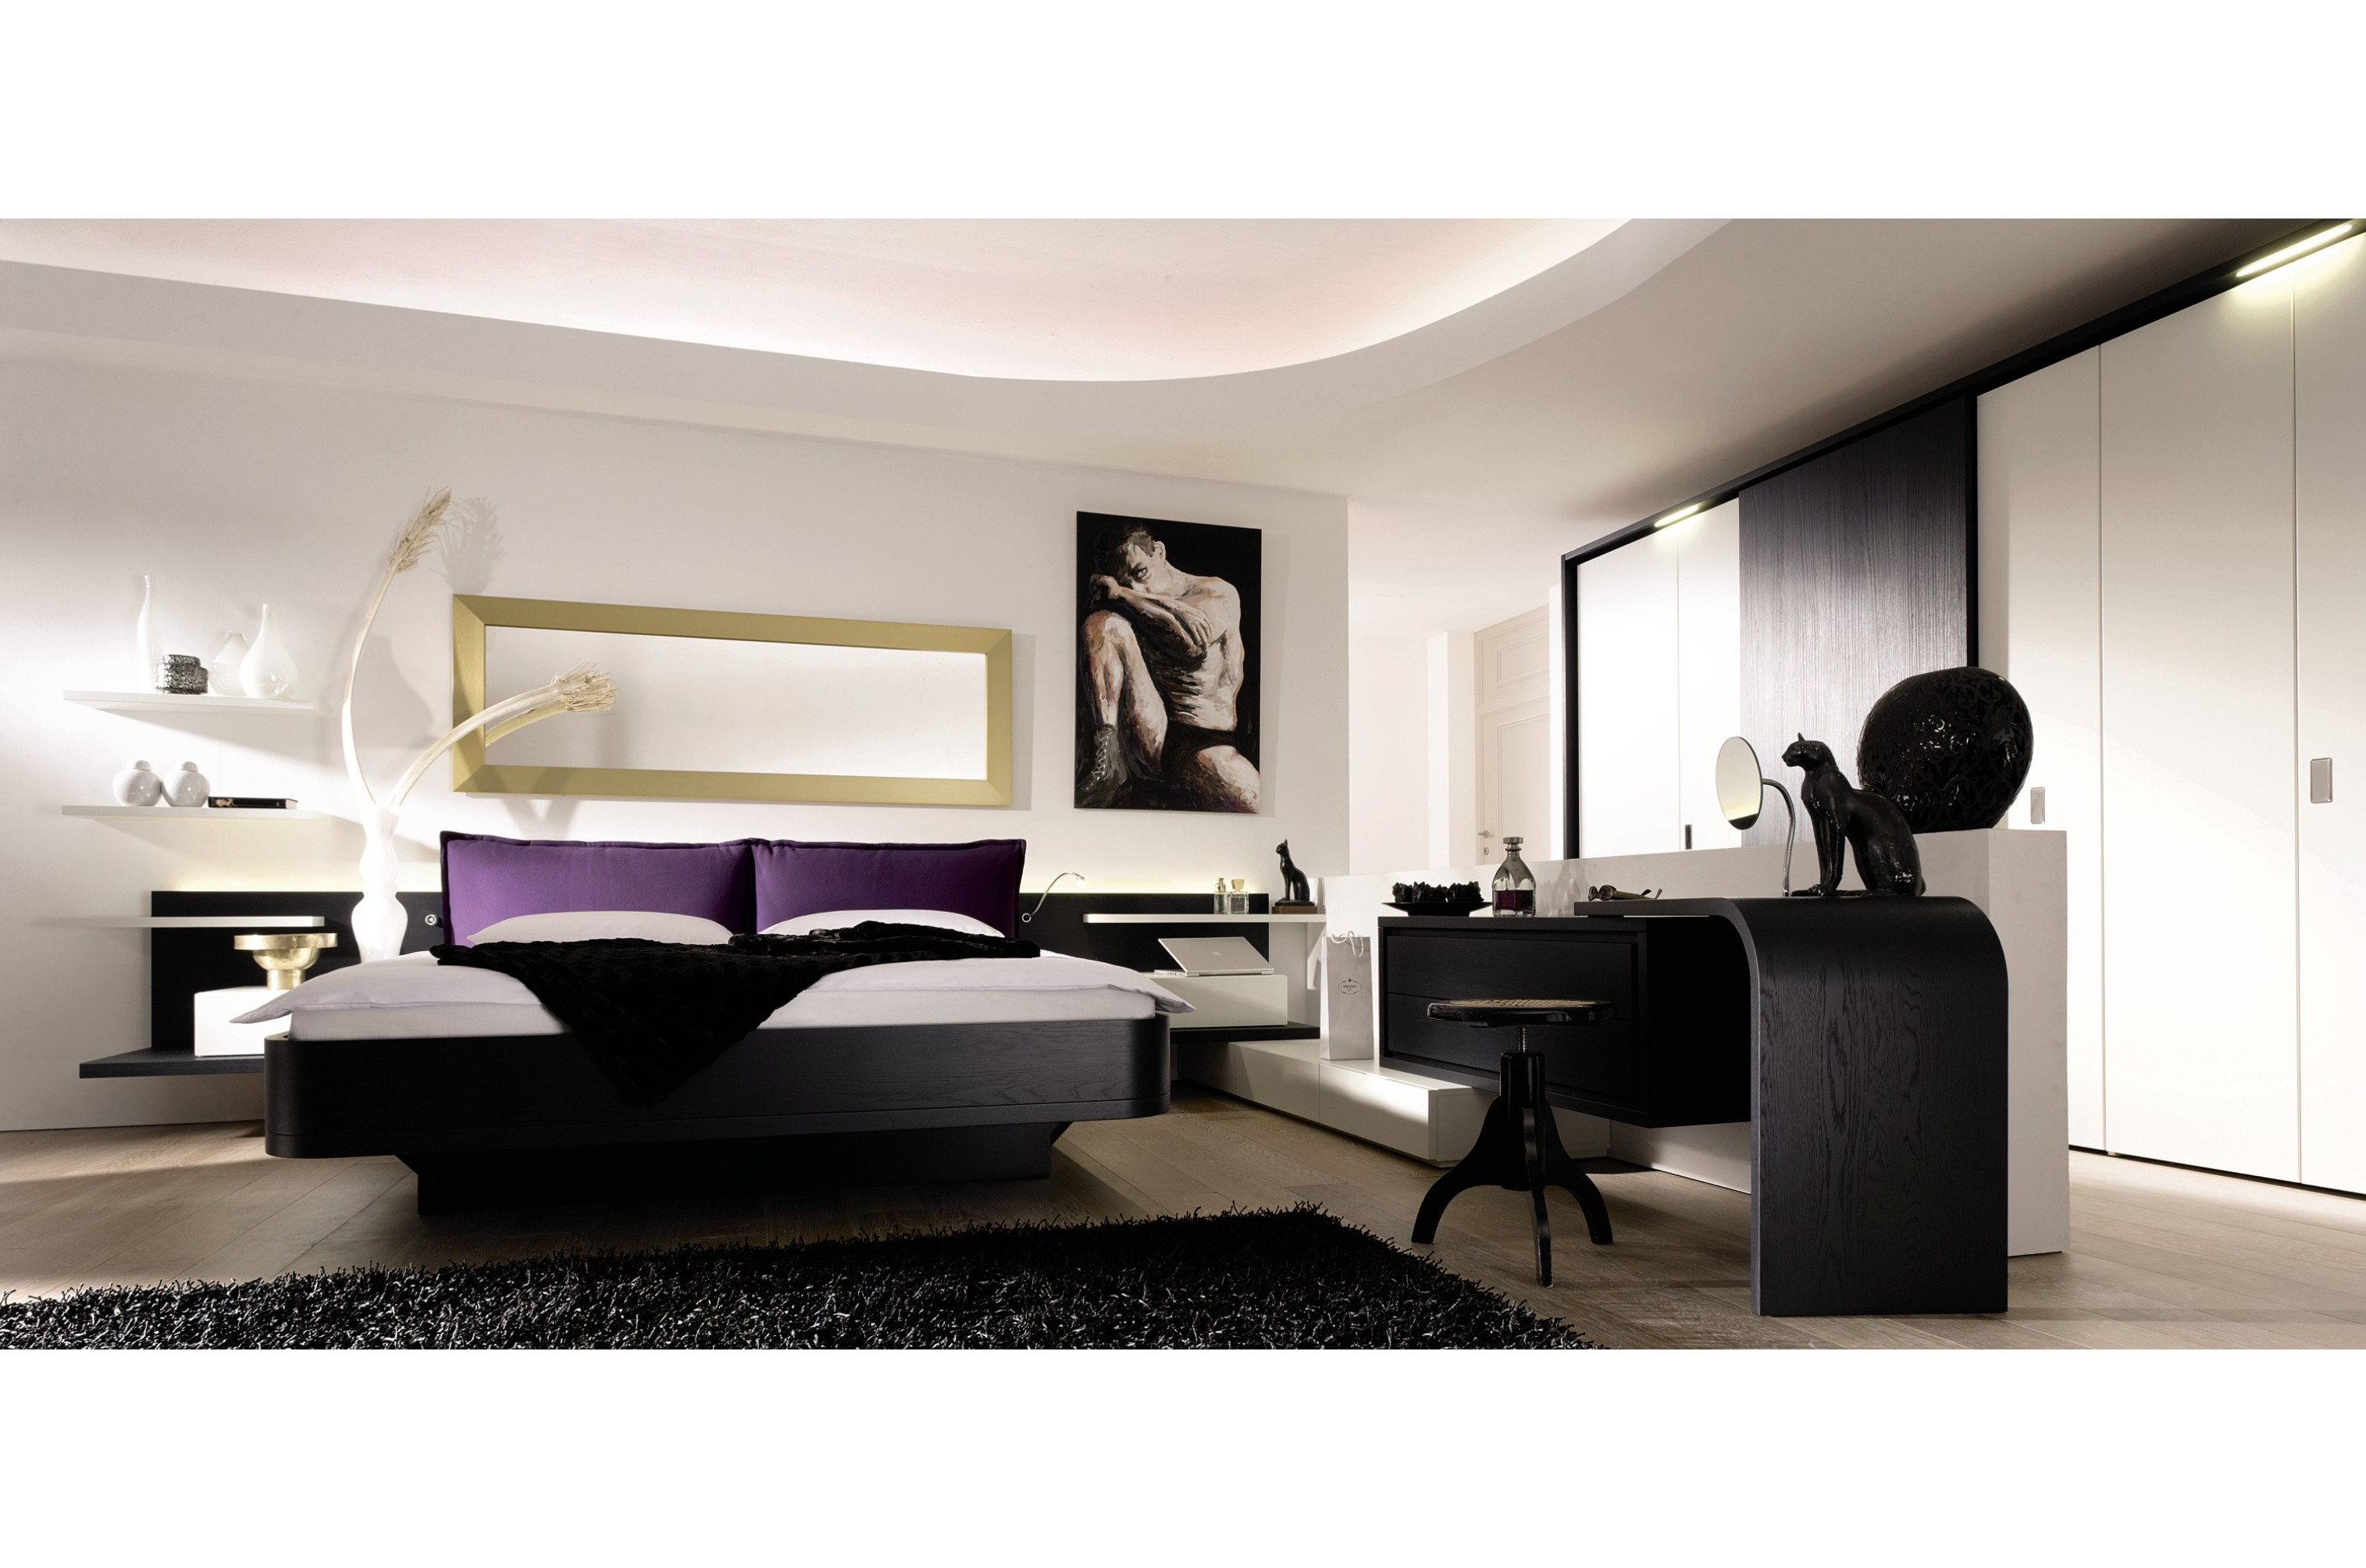 Contemporary bedroom design for your home 17